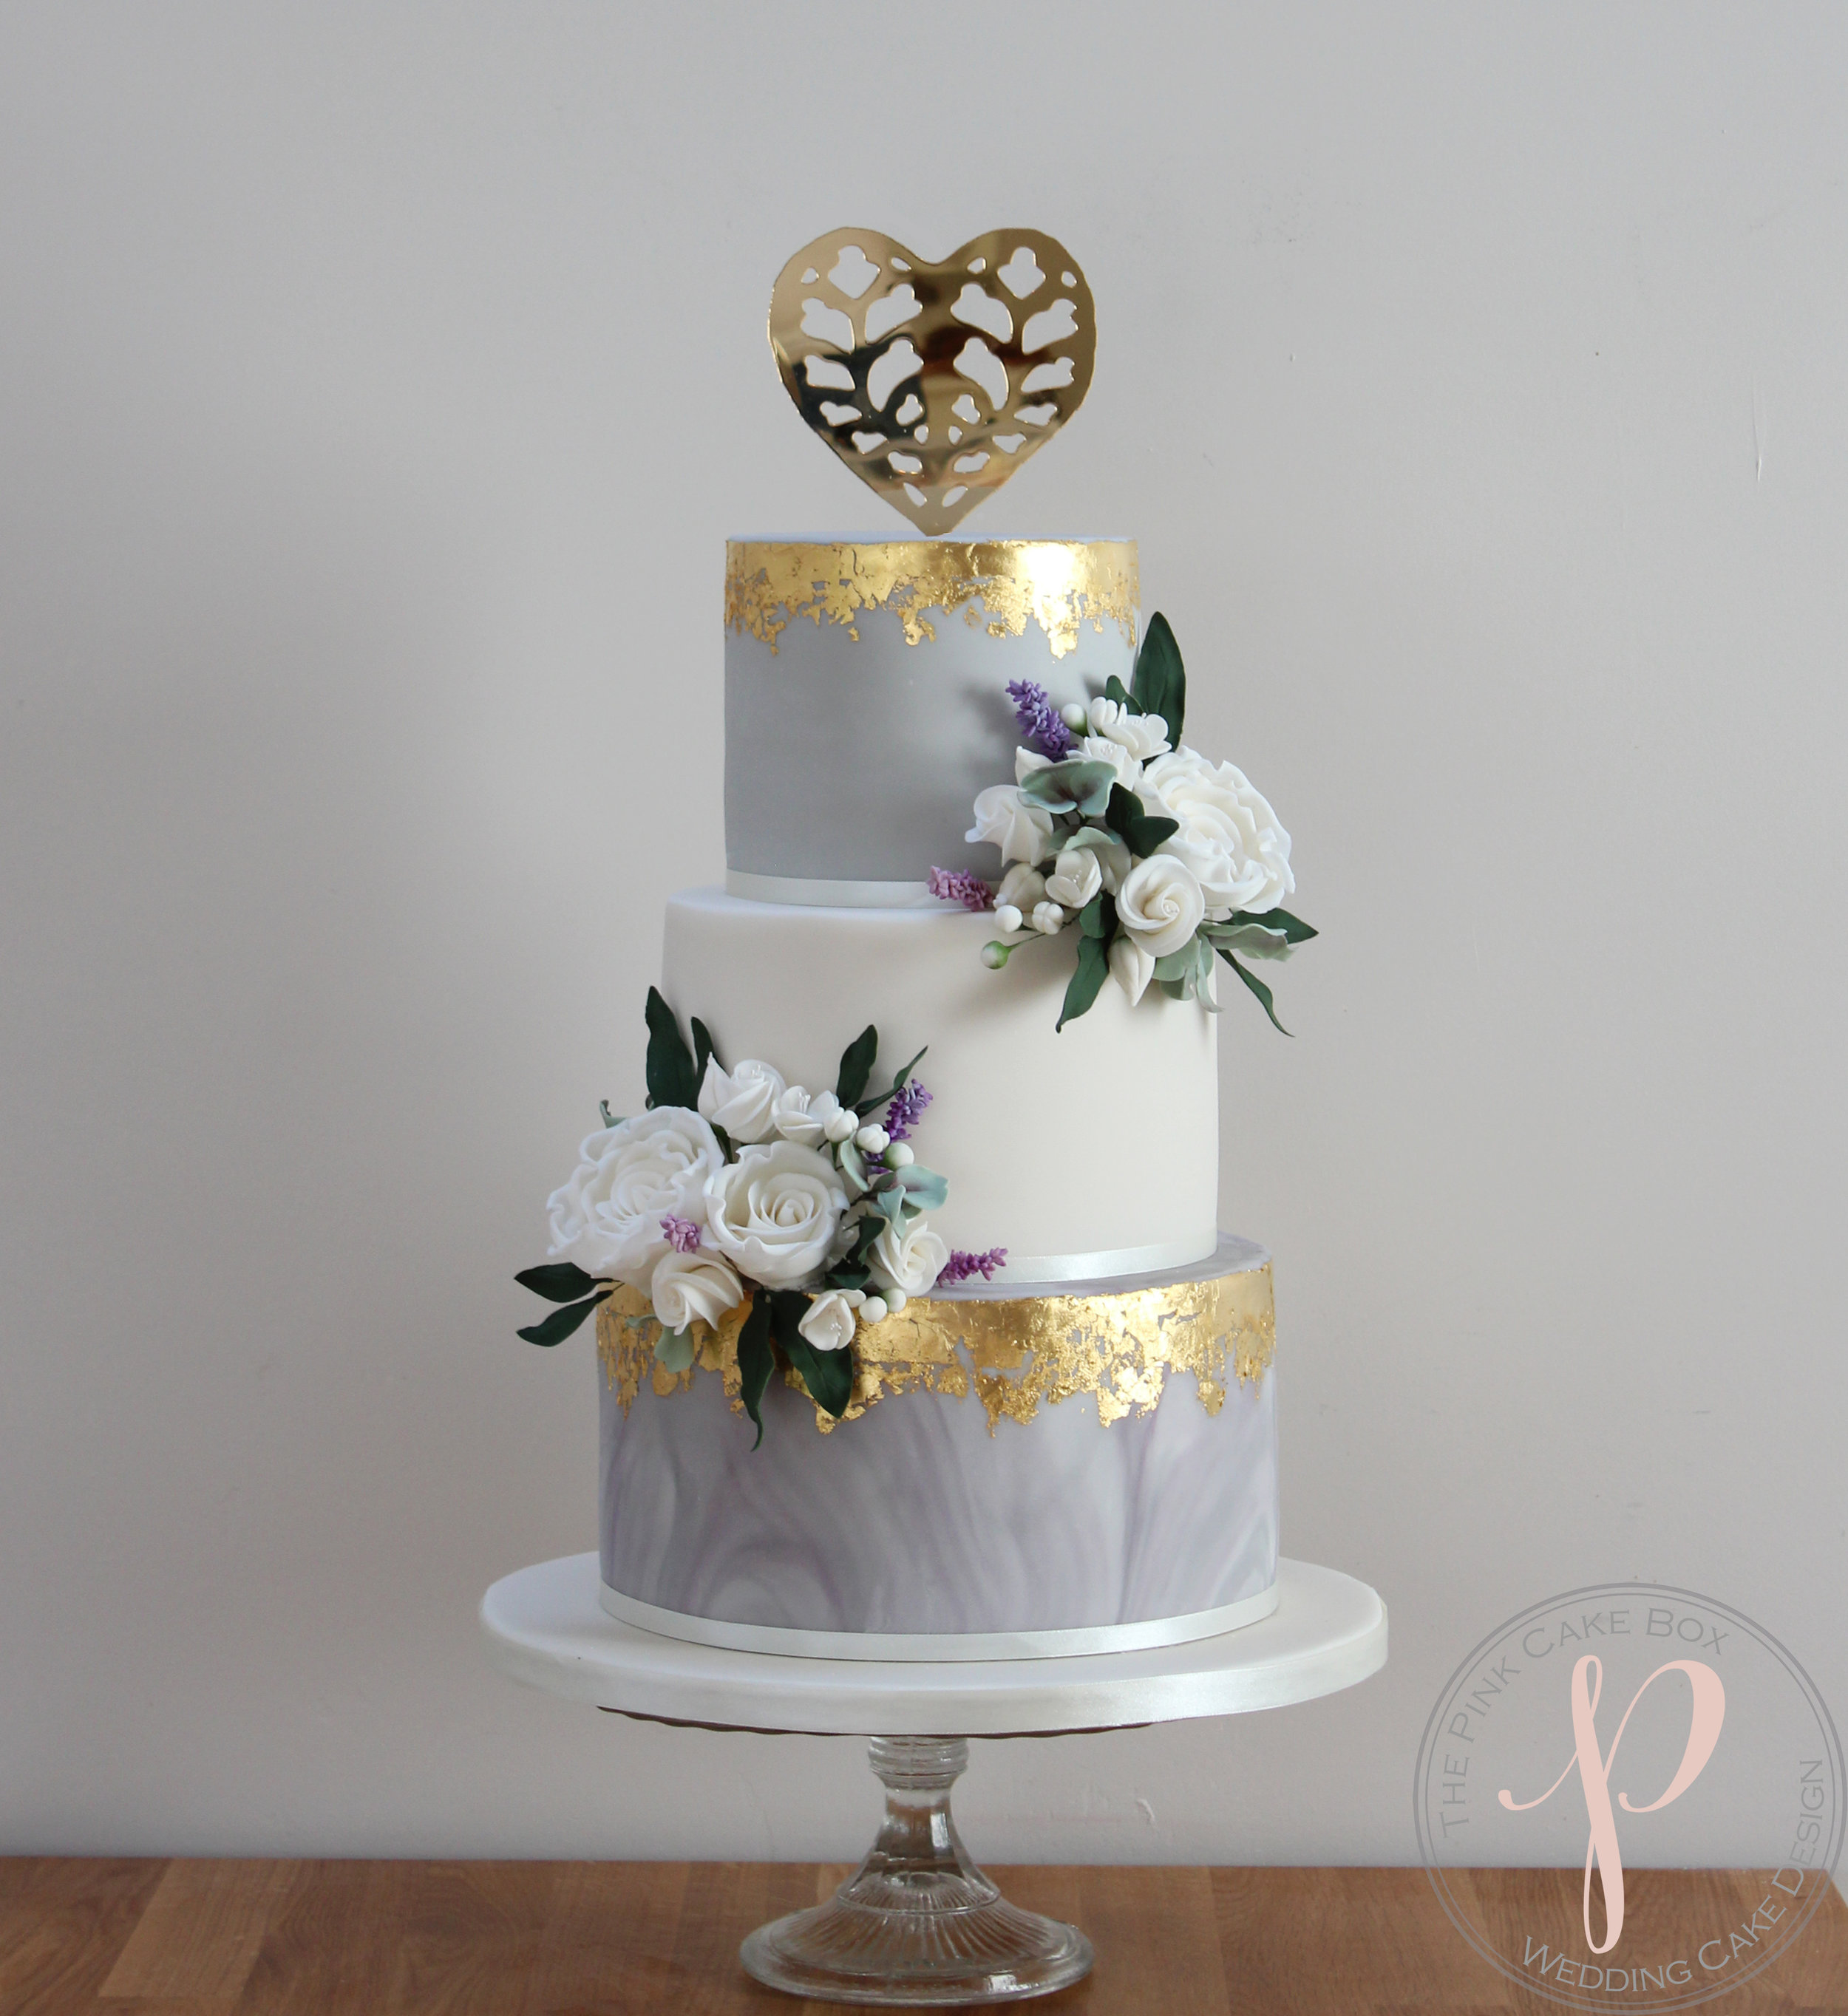 Grey And Gold Leaf Wedding Cake With Sugar Flowers For Gemma And Matt At Tissington Hall The Pink Cake Box Wedding Cake Design